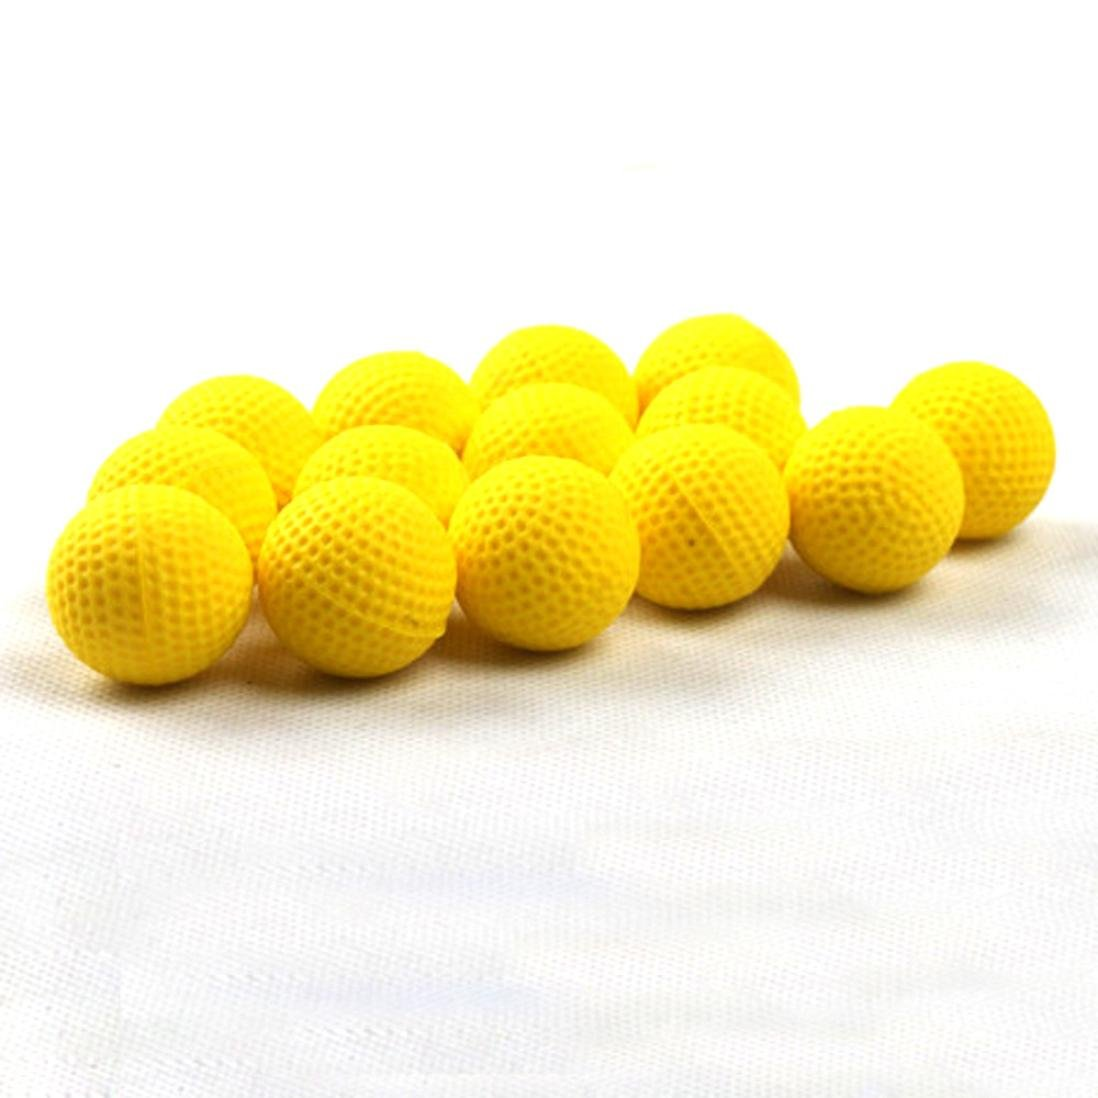 (Yellow) - Matoen 50Pcs Bullet Balls Rounds Compatible For Nerf Rival Apollo Child Toy (Yellow) B0784BPQKN